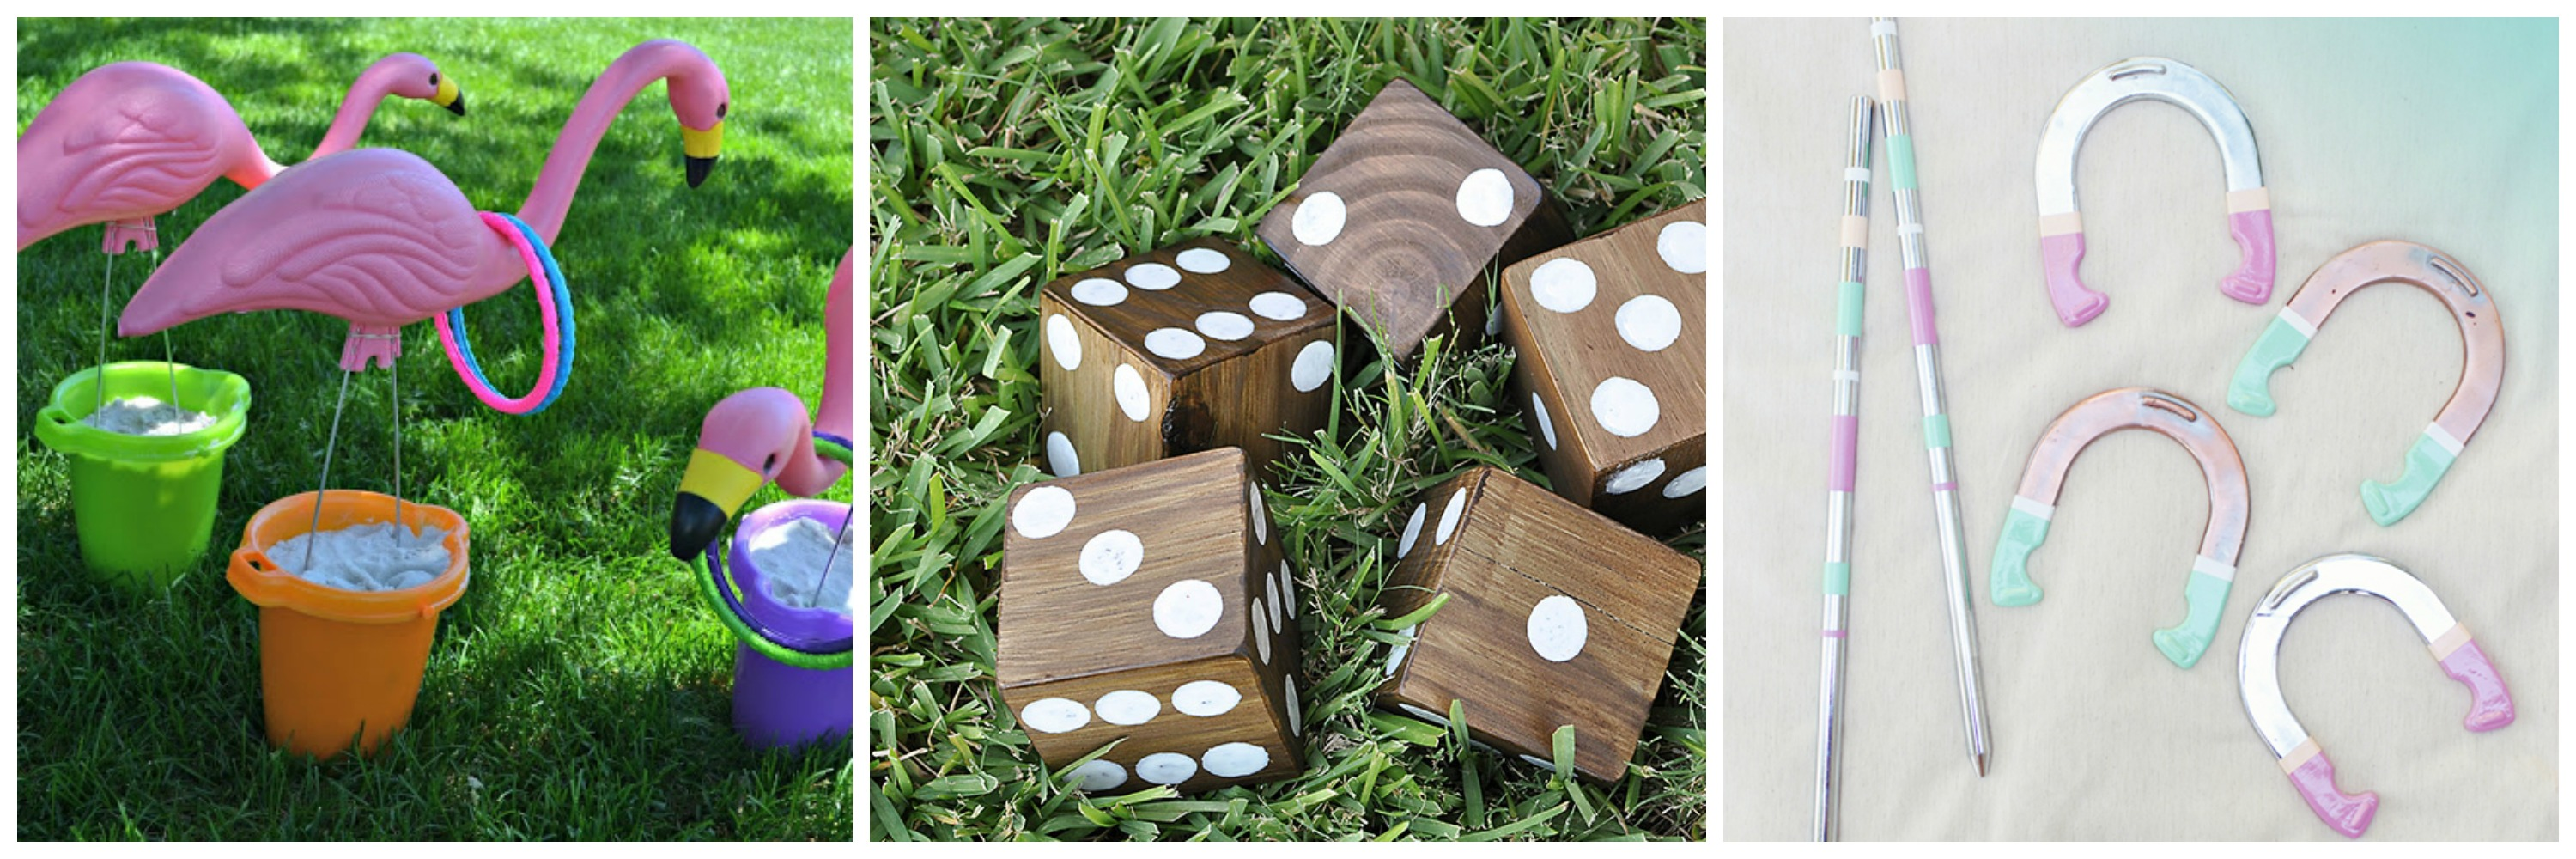 9 diy summer yard games, make your own outdoor games, DIY outdoor games, DIY yard games for kids, DIY yard games, fun games for the backyard, backyard games, backyard DIY games